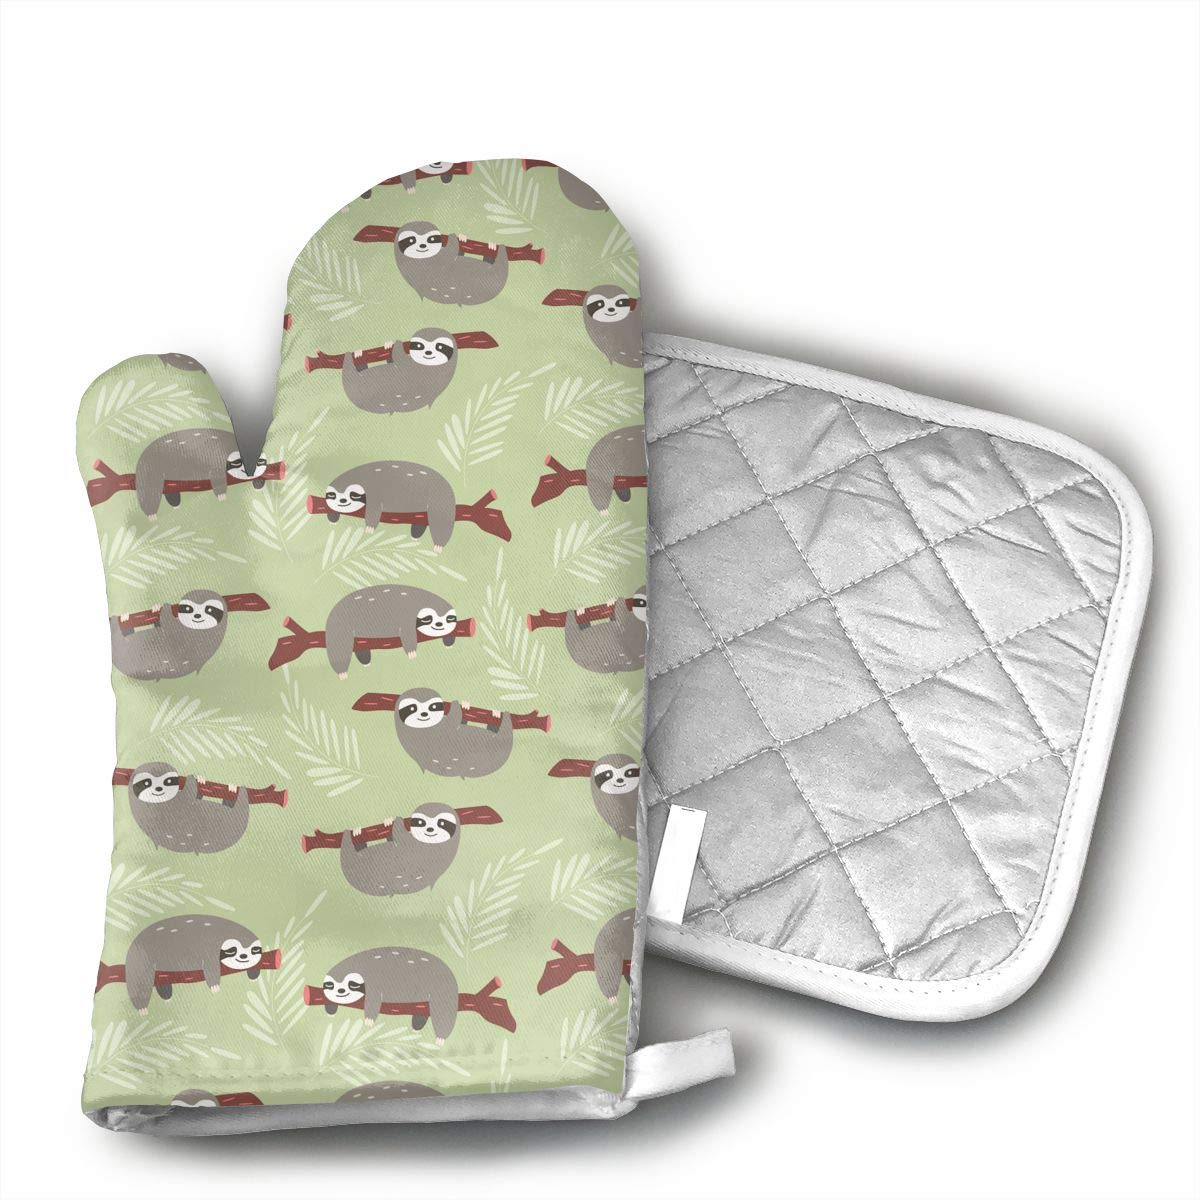 MEILVWEN Sloth Oven Mitt and Pot Holder Set,Heat Resistant for Cooking and Baking Kitchen Gift